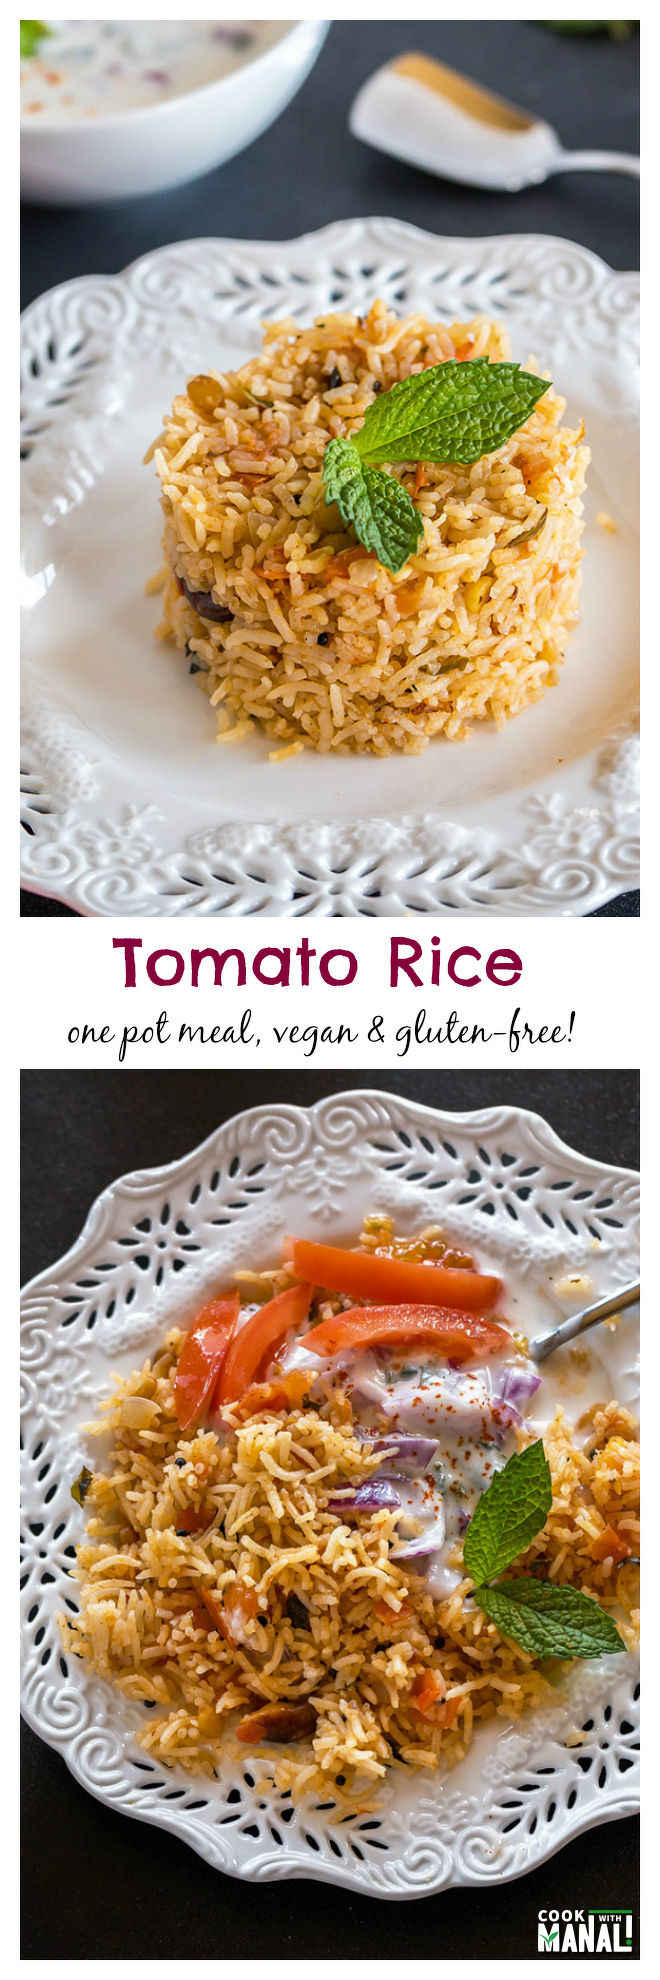 Tomato Rice-Collage